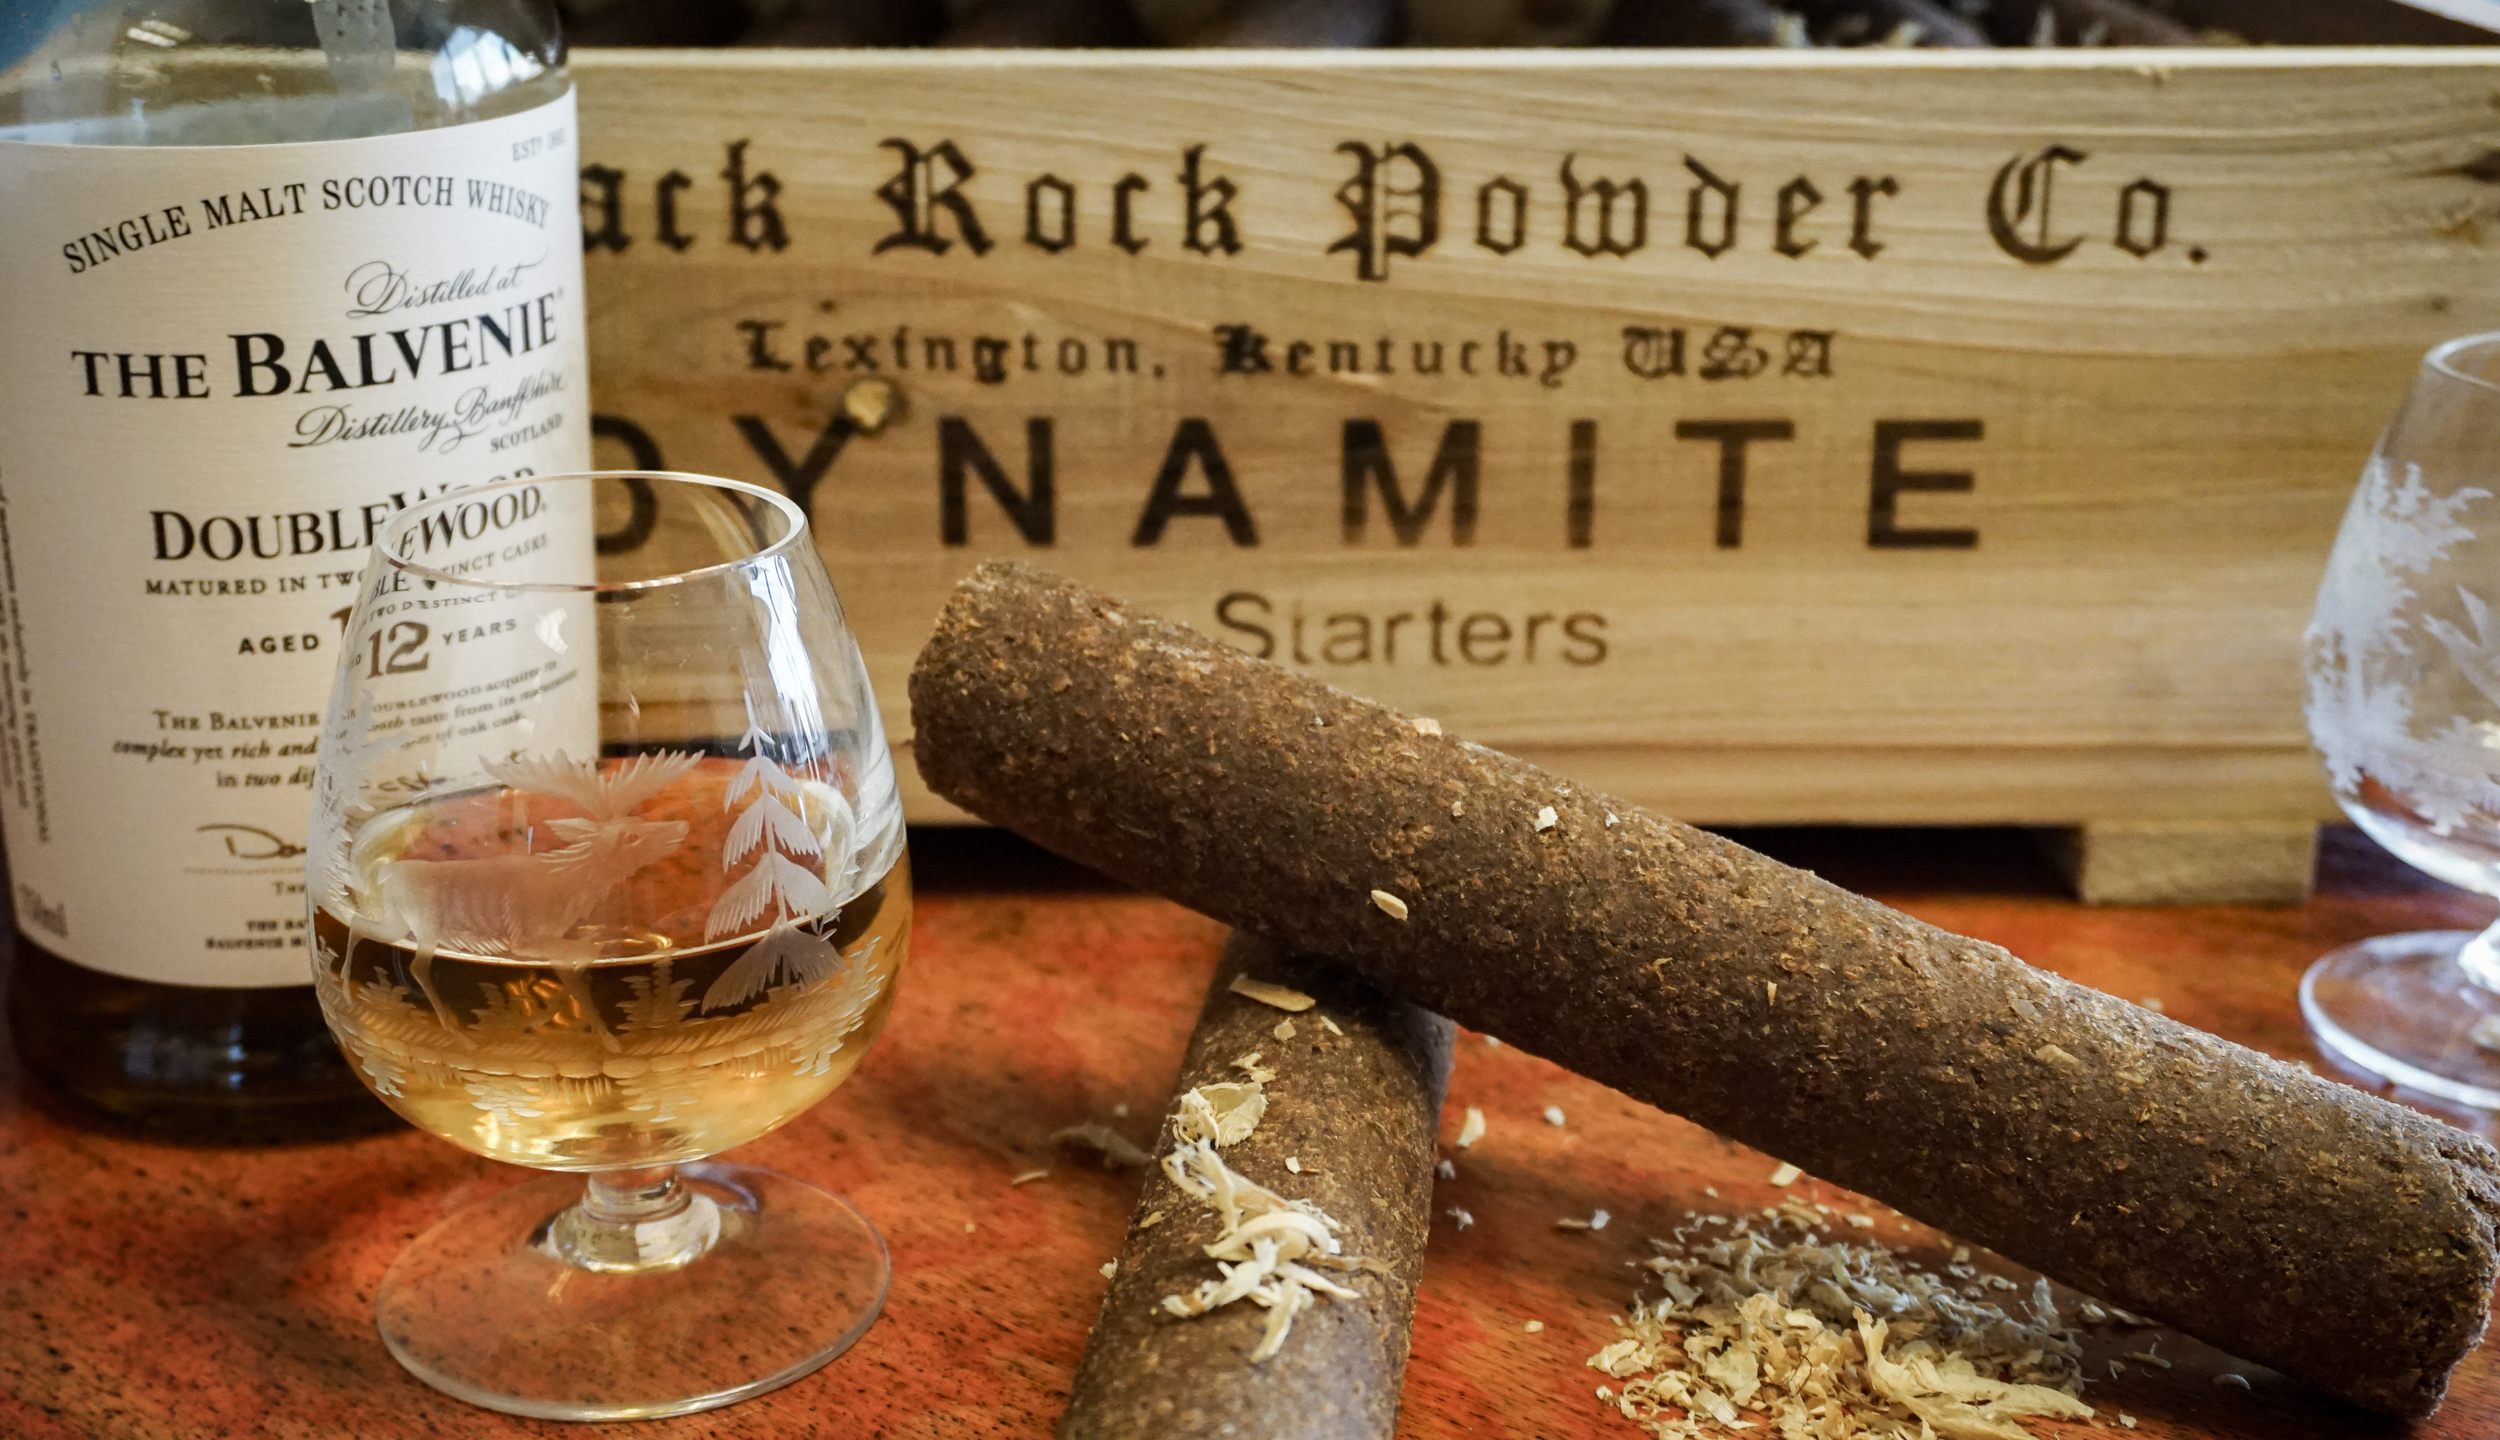 Full disclosure: This is not real dynamite. It is, however, real scotch.